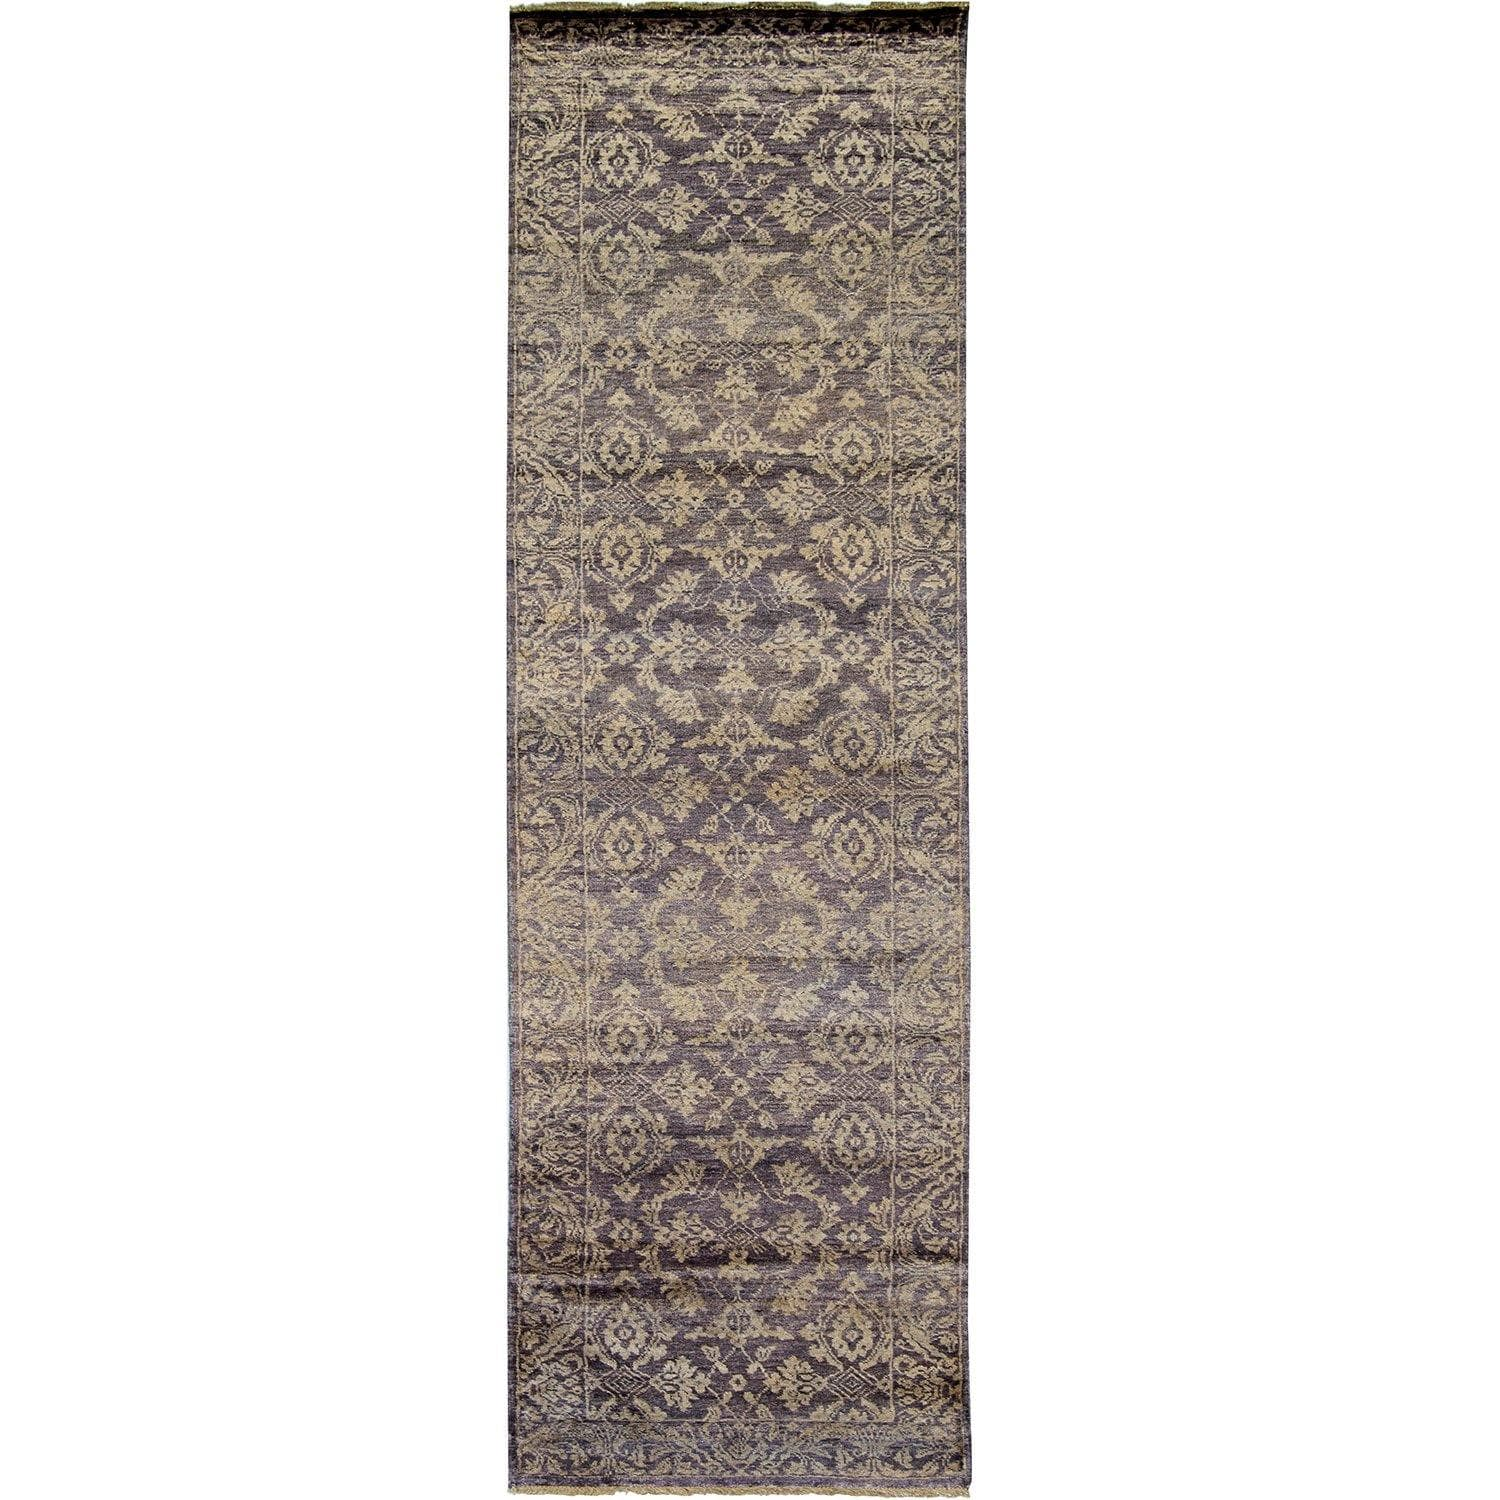 Contemporary Hand-knotted NZ Wool & Bamboo Silk Runner 76cm x 294cm Persian-Rug | House-of-Haghi | NewMarket | Auckland | NZ | Handmade Persian Rugs | Hand Knotted Persian Rugs